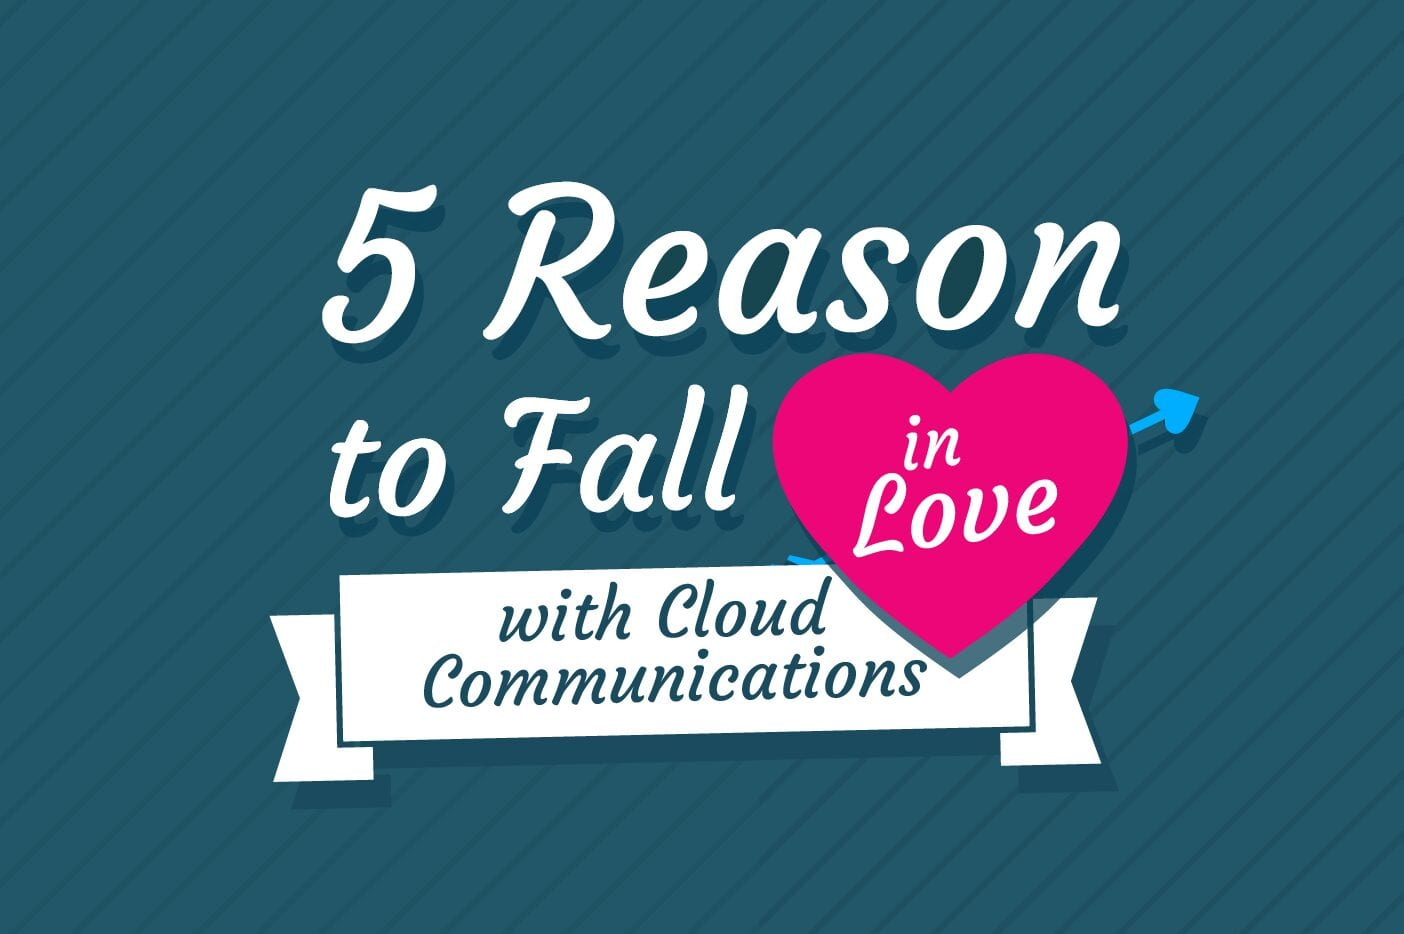 5 Reason to Fall in Love with Cloud Communications